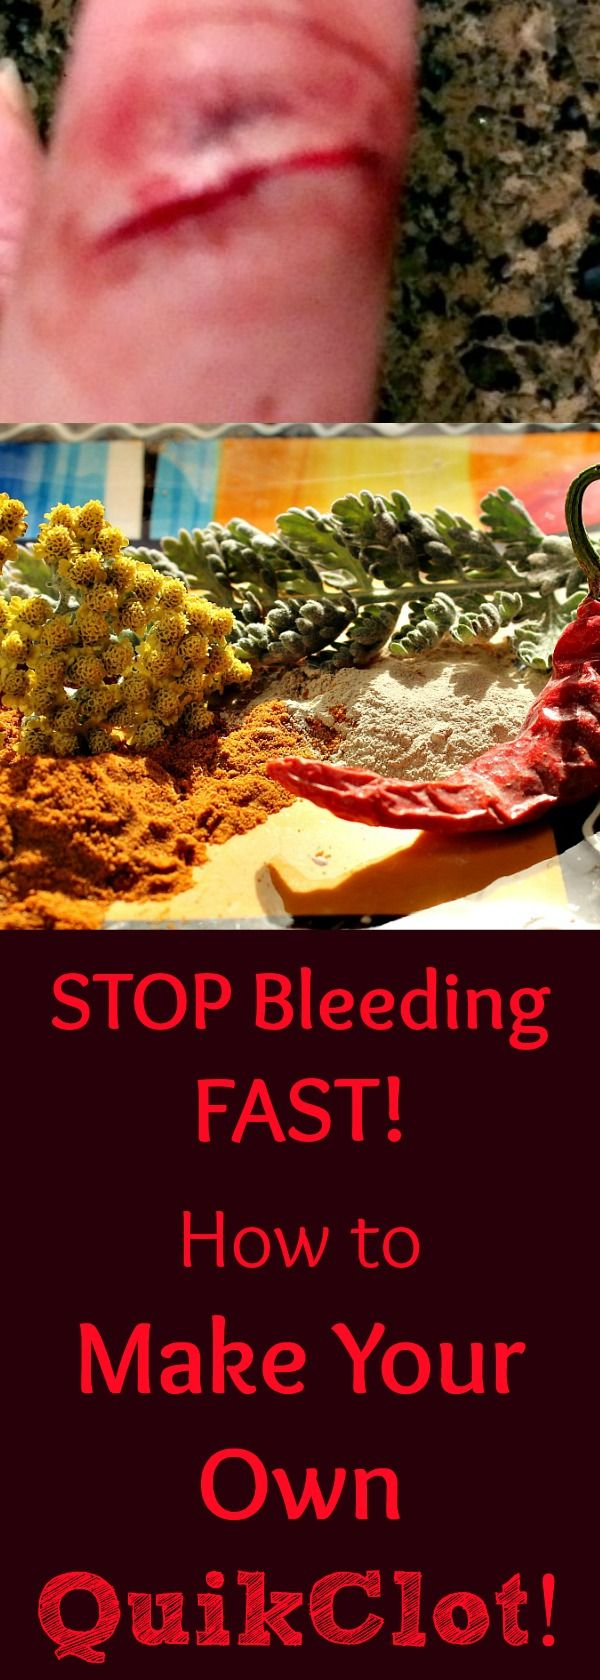 Find out how to stop a wound from bleeding FAST! Even if you don't have the real Quik Clot, you can make your own easily and effectively! Find out how!